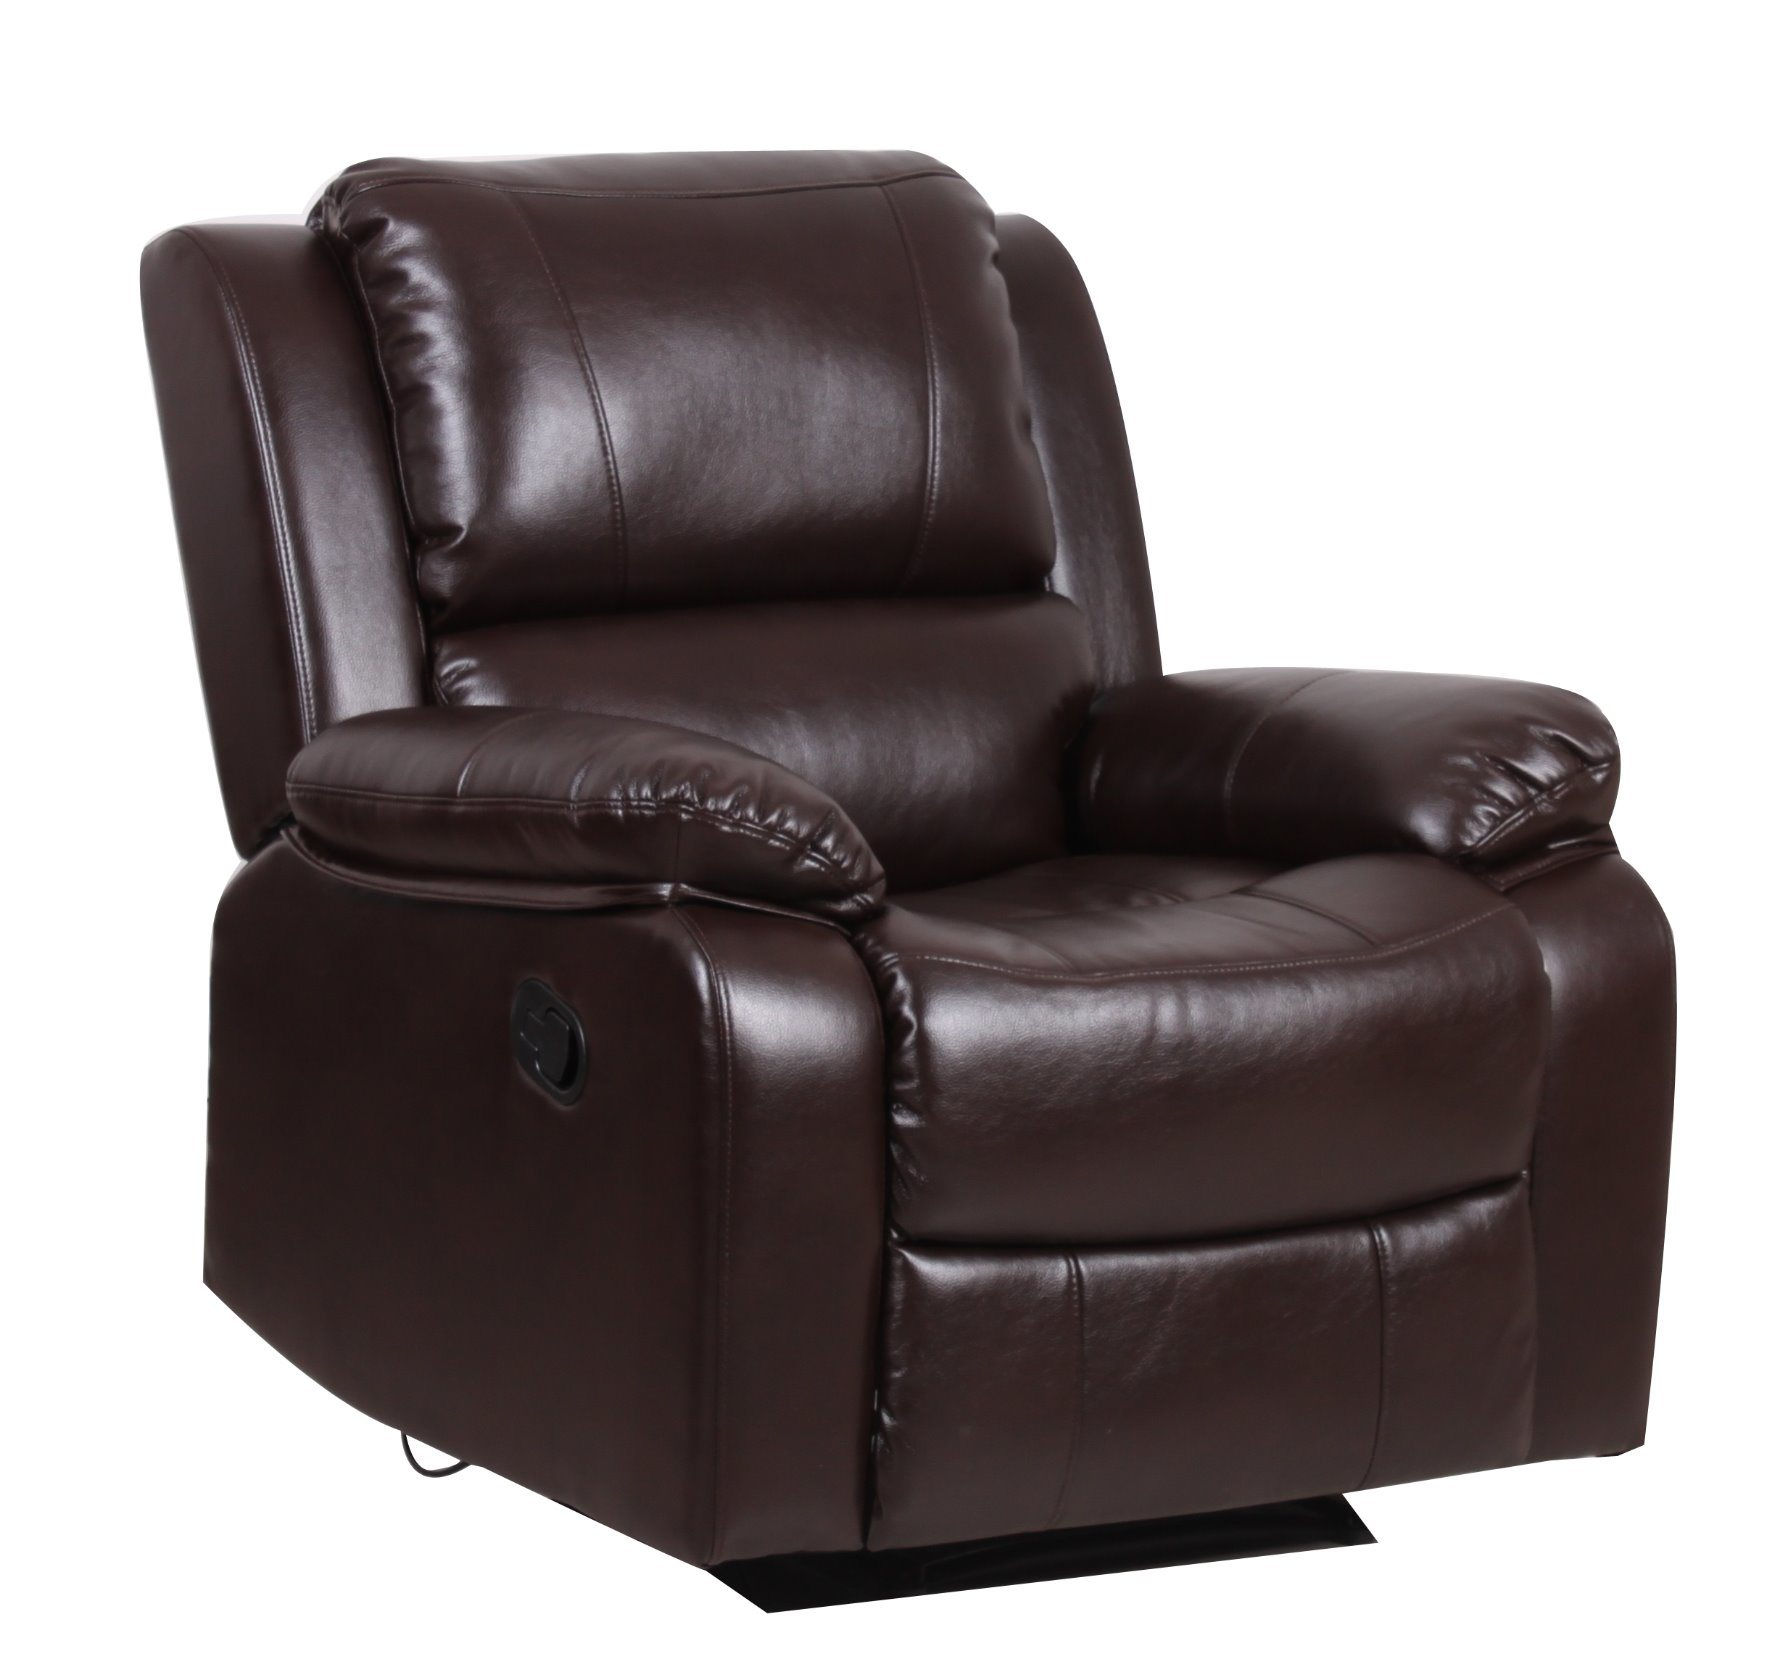 Fabulous Hot Item Cheap Recliner Chair In Pu Ocoug Best Dining Table And Chair Ideas Images Ocougorg